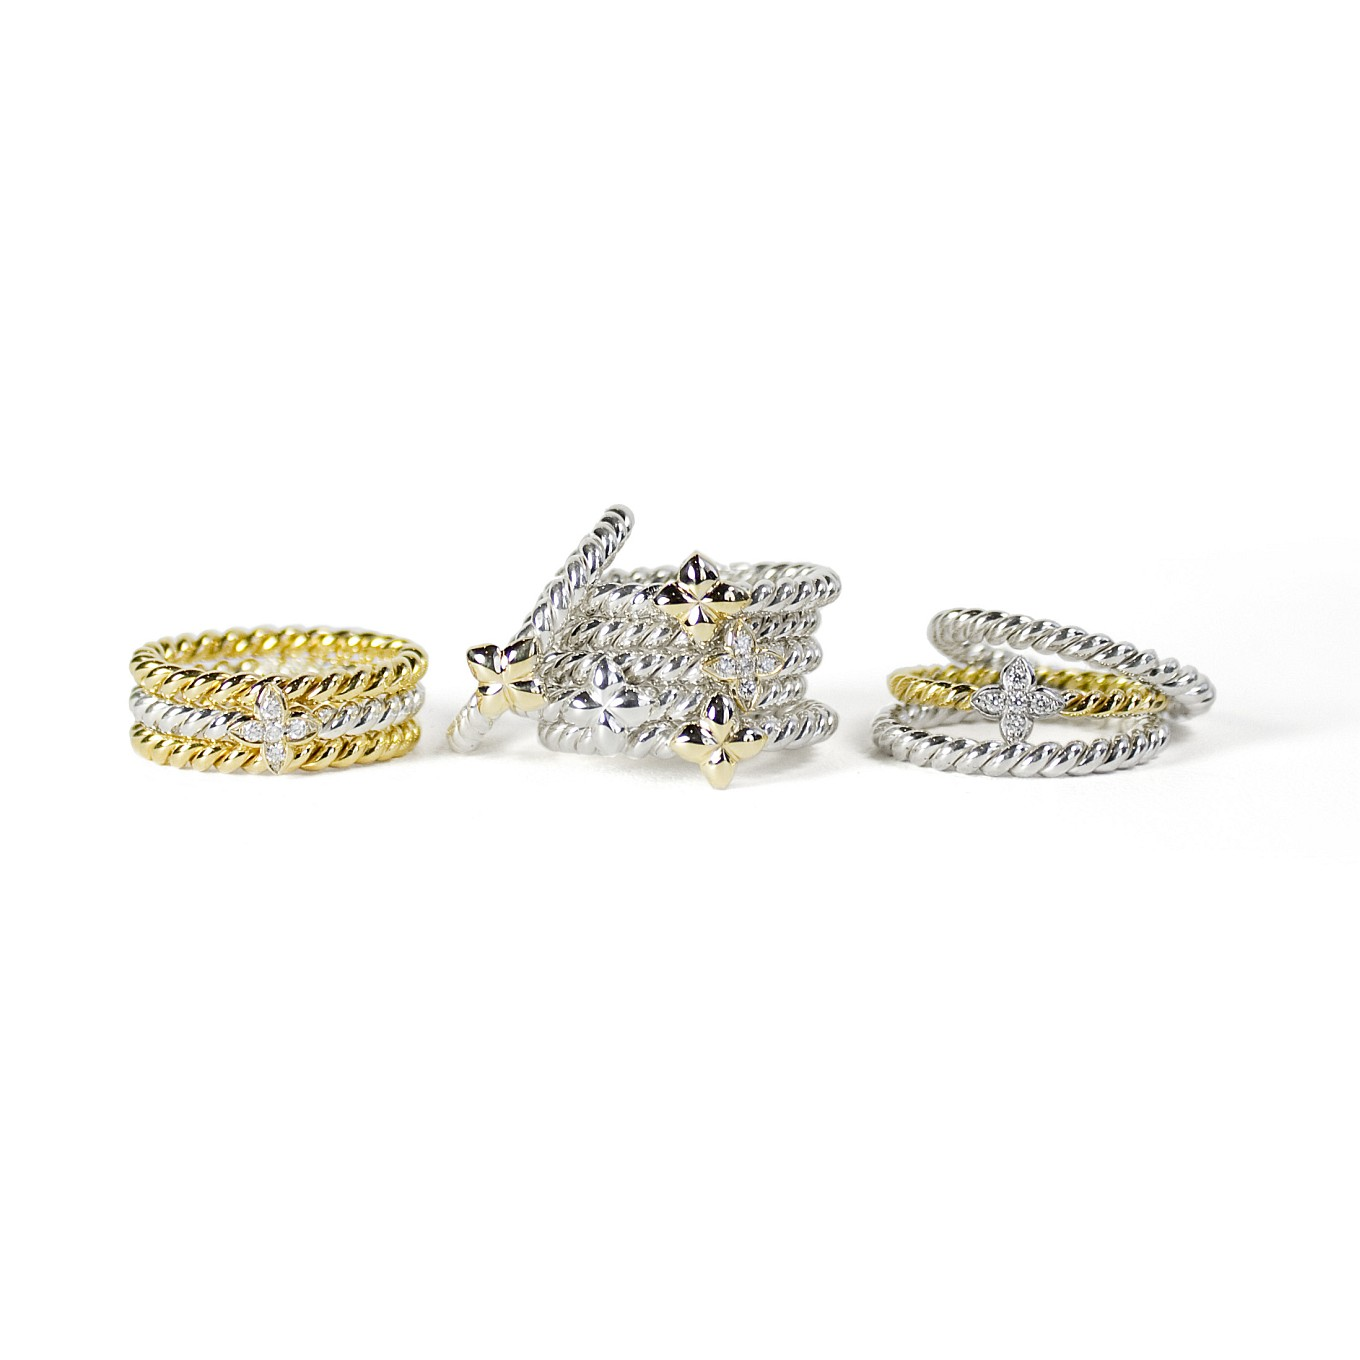 STERLING & GOLD BRAIDED BANDS & BRAIDED SEVILLA RINGS